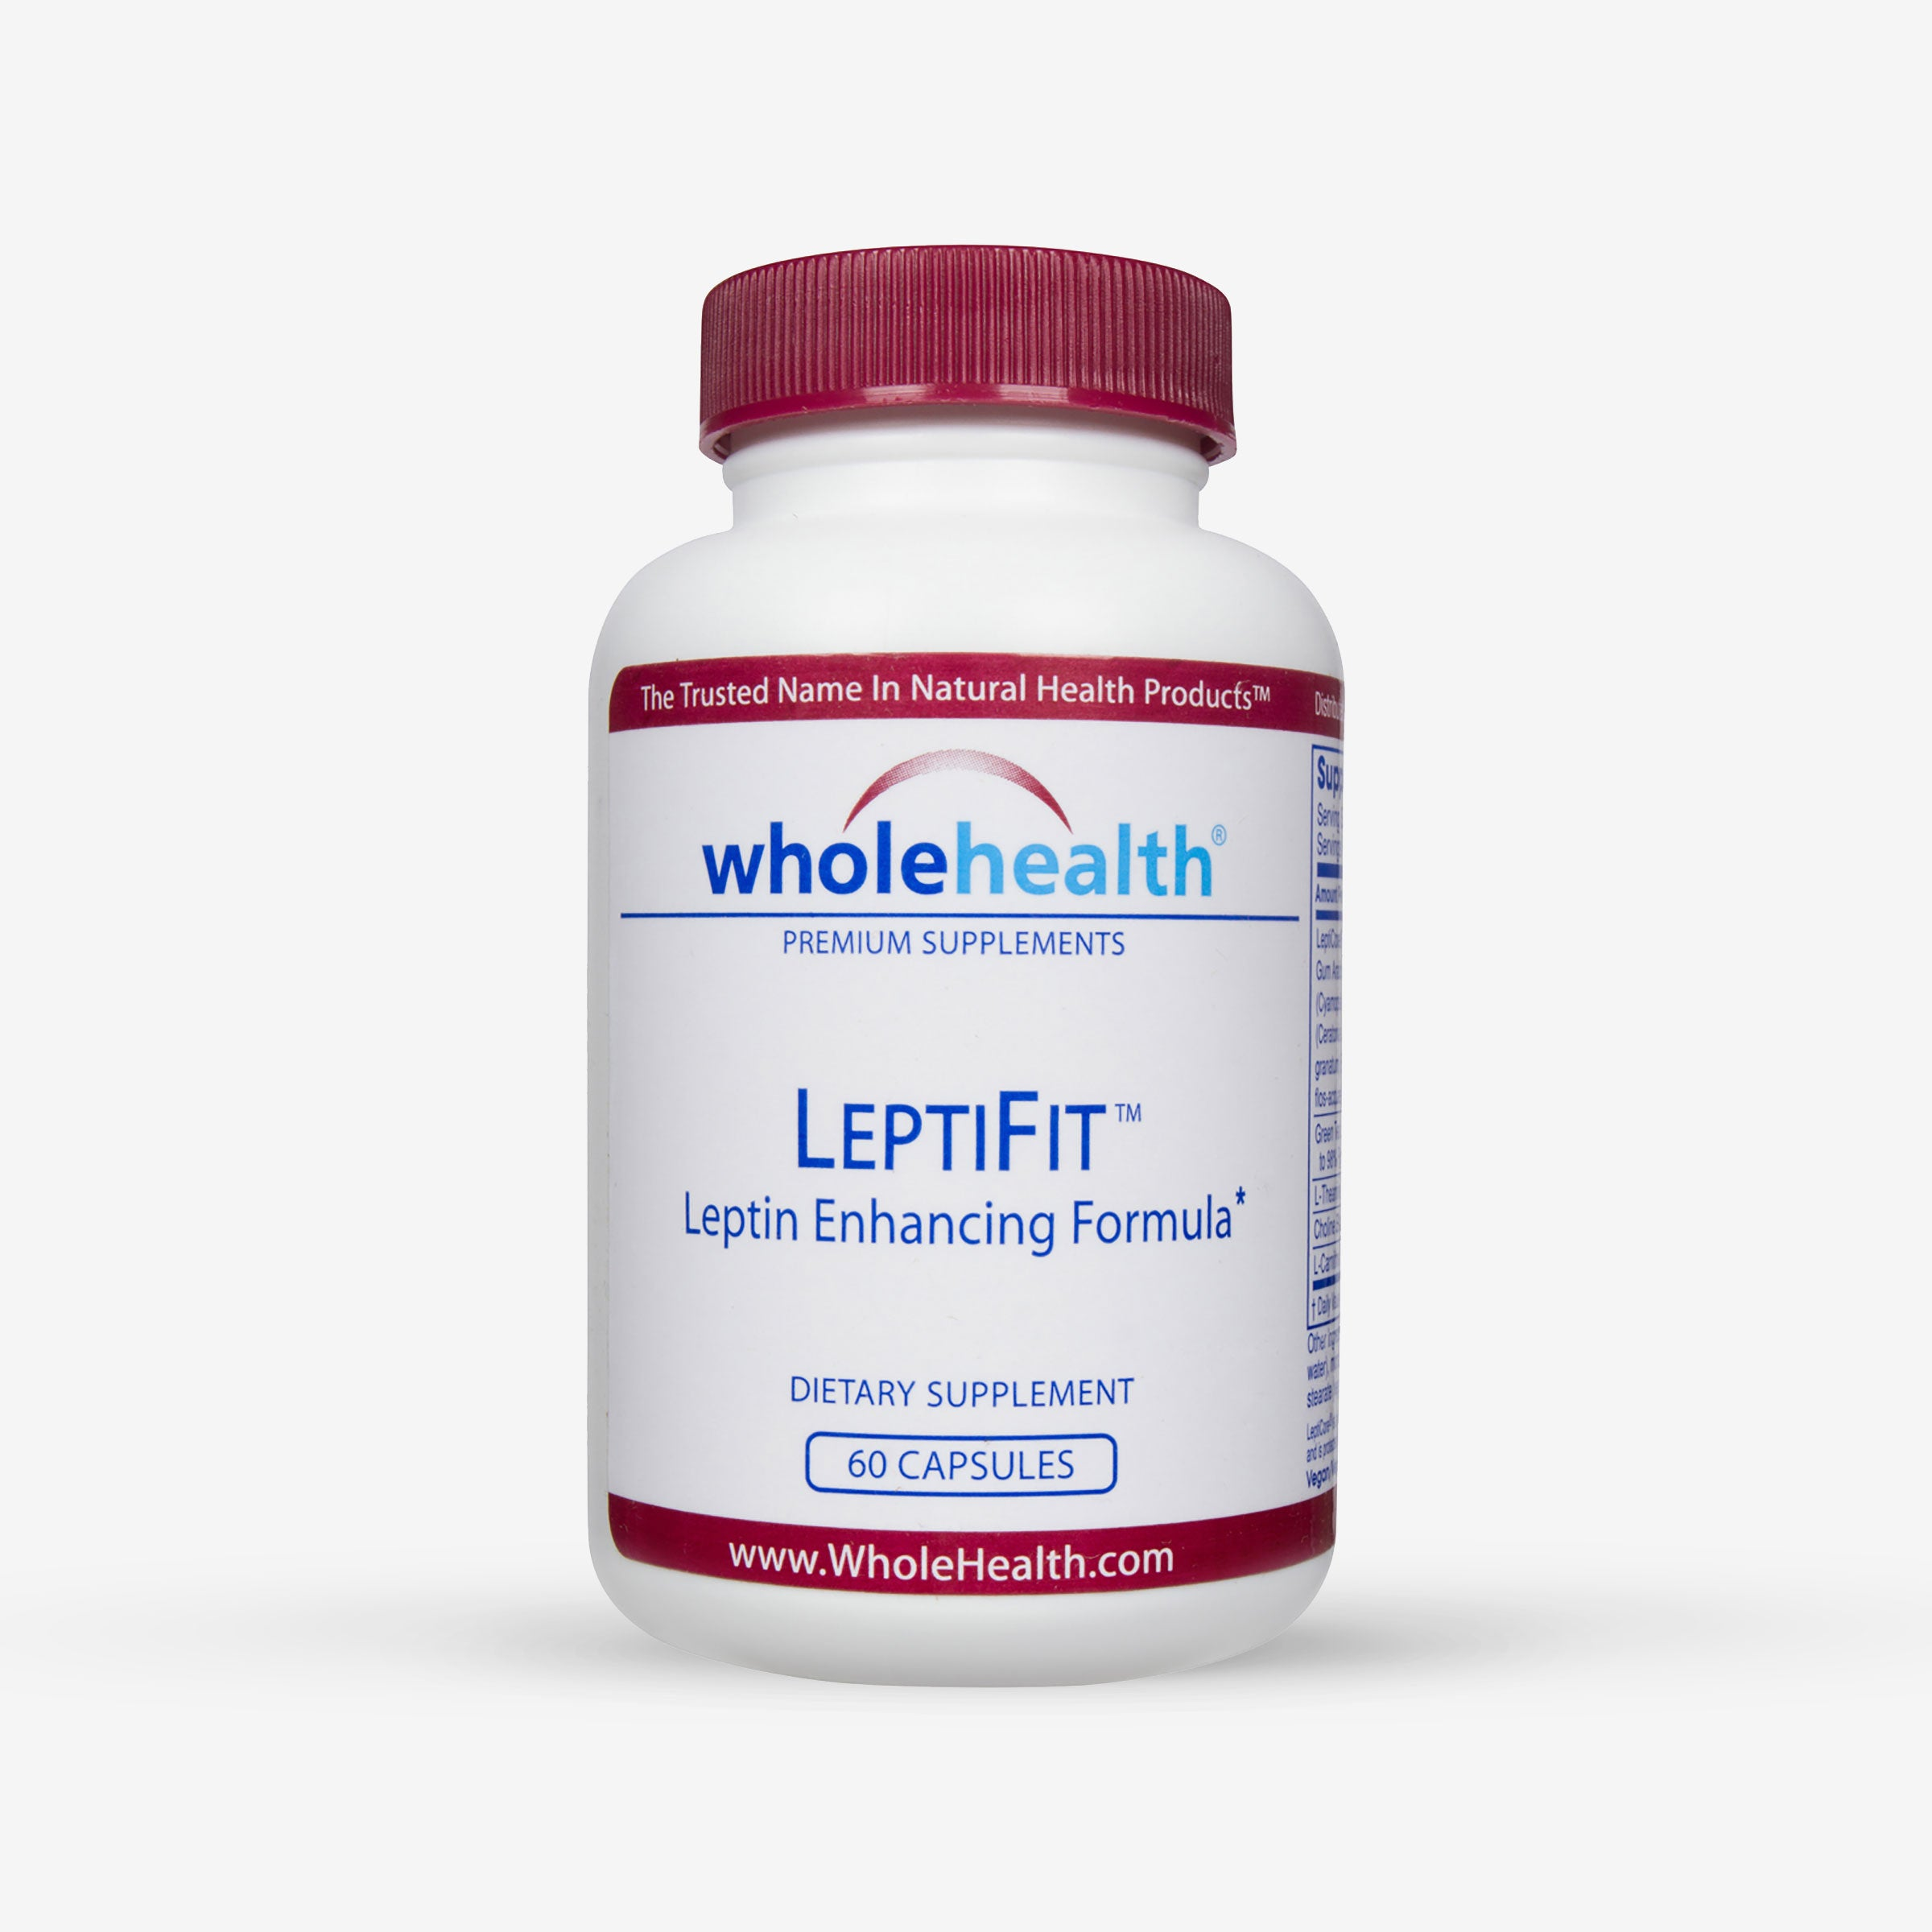 LeptiFit Leptin Enhancing Supplement (60 Capsules)